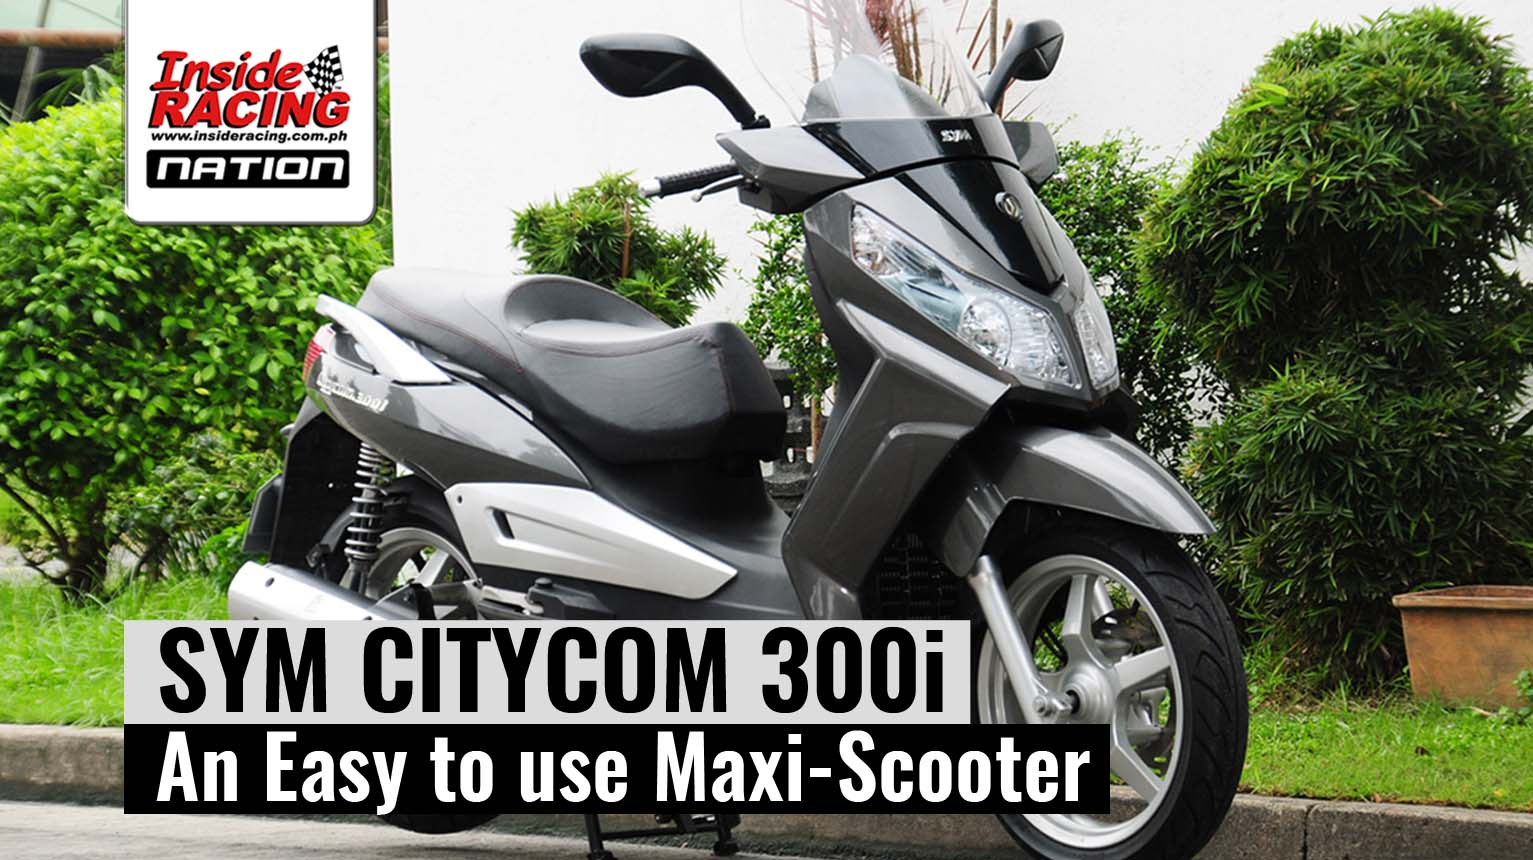 SYM CITYCOM 300i – An Easy to use Maxi-Scooter | Inside Racing